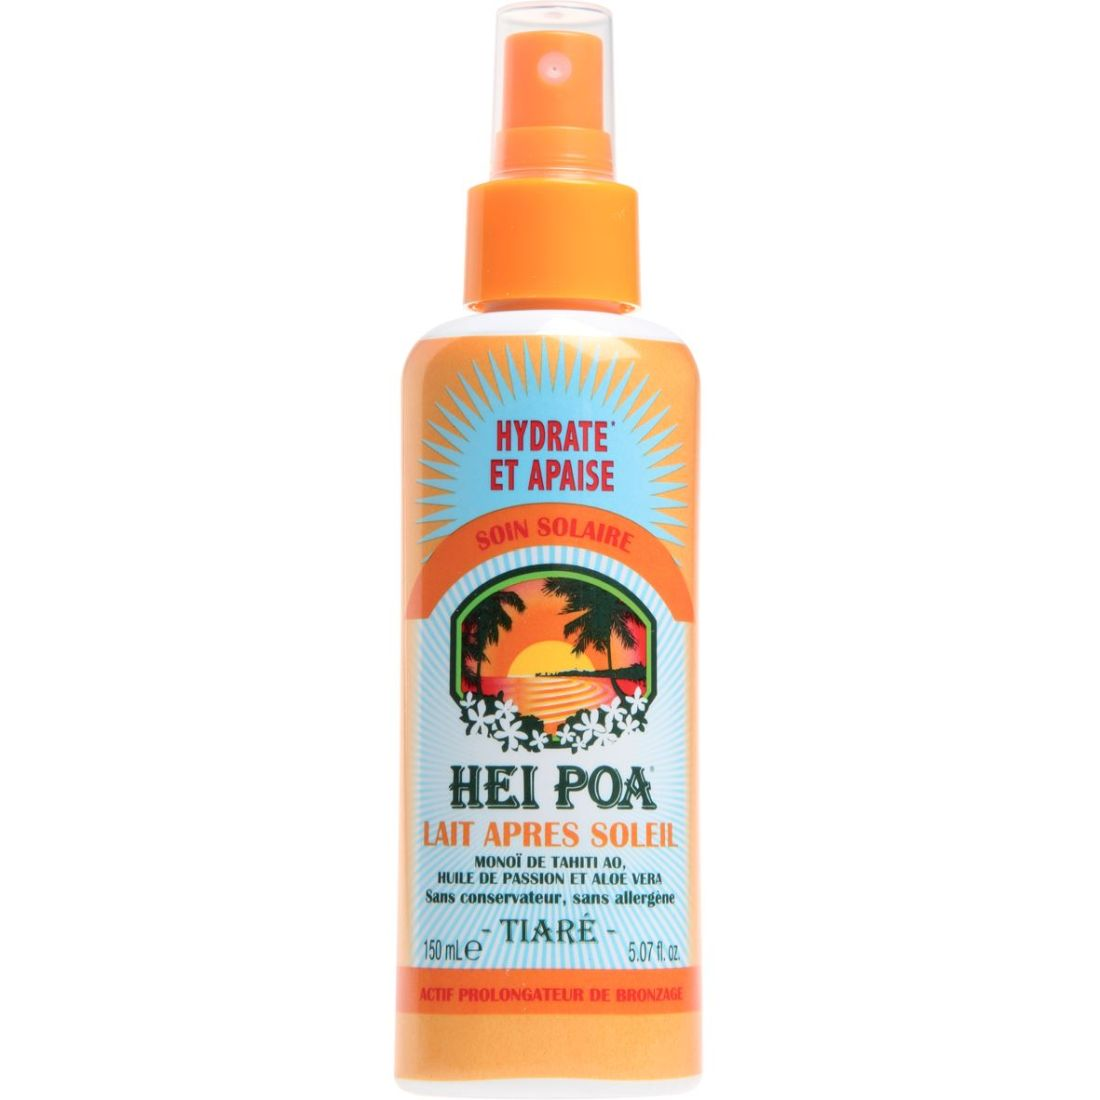 Hei Poa Tahiti Monoi After Sun Milk Tiare Spray 150ml